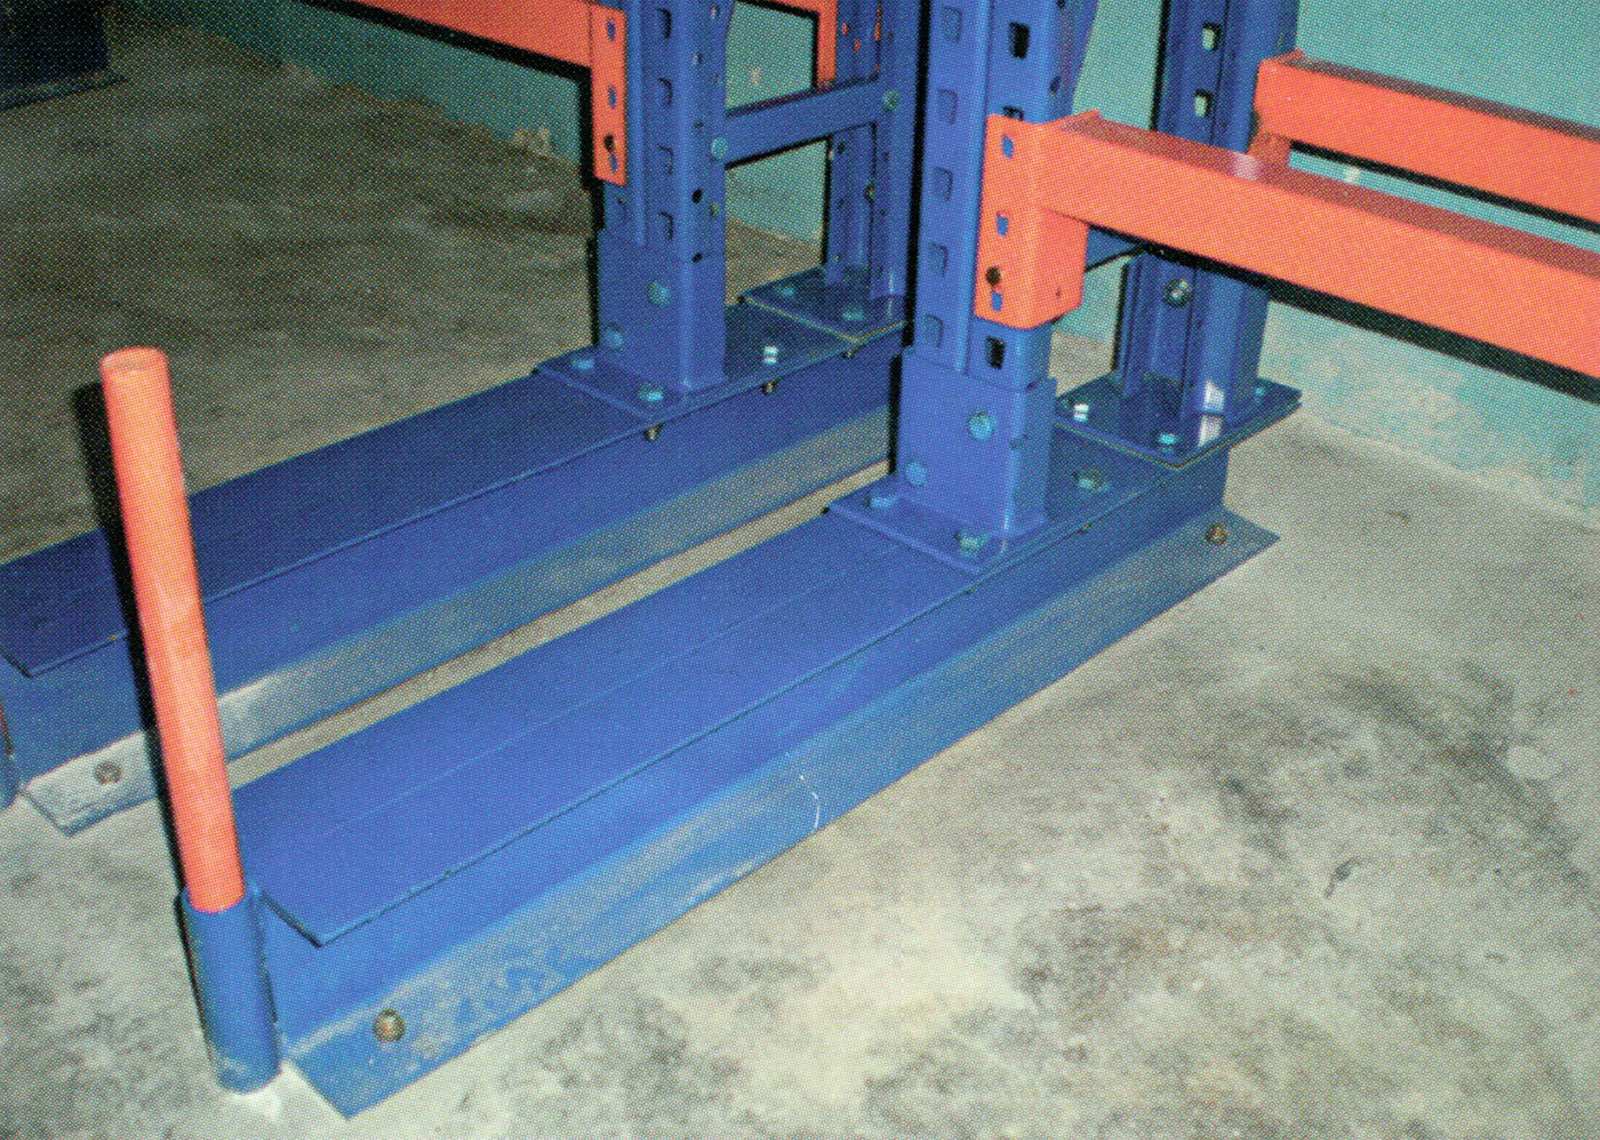 Extended Base and Braces will re-enforce these racks stability & rigidity